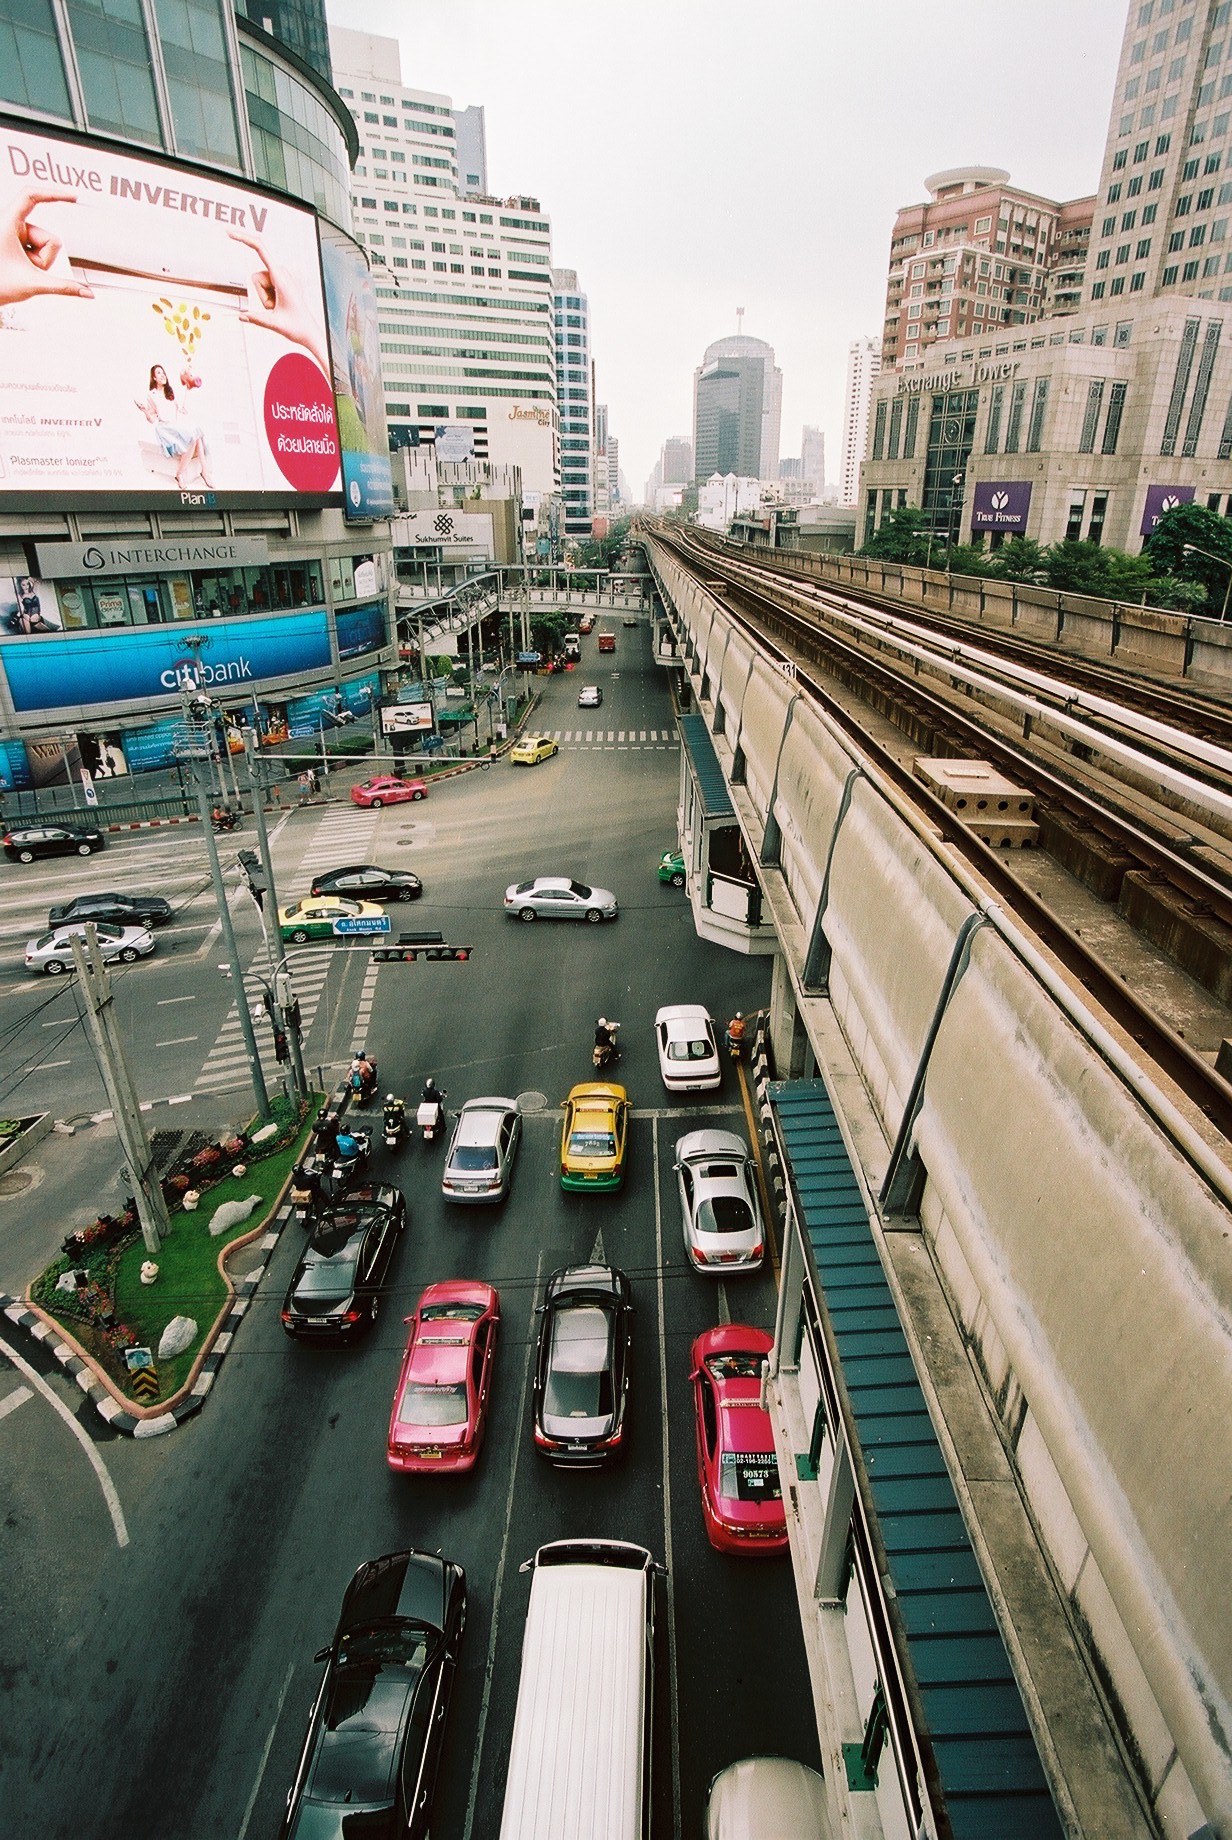 Portra 160 | Another shot from the BTS platform. These platforms are made for photographers! :)